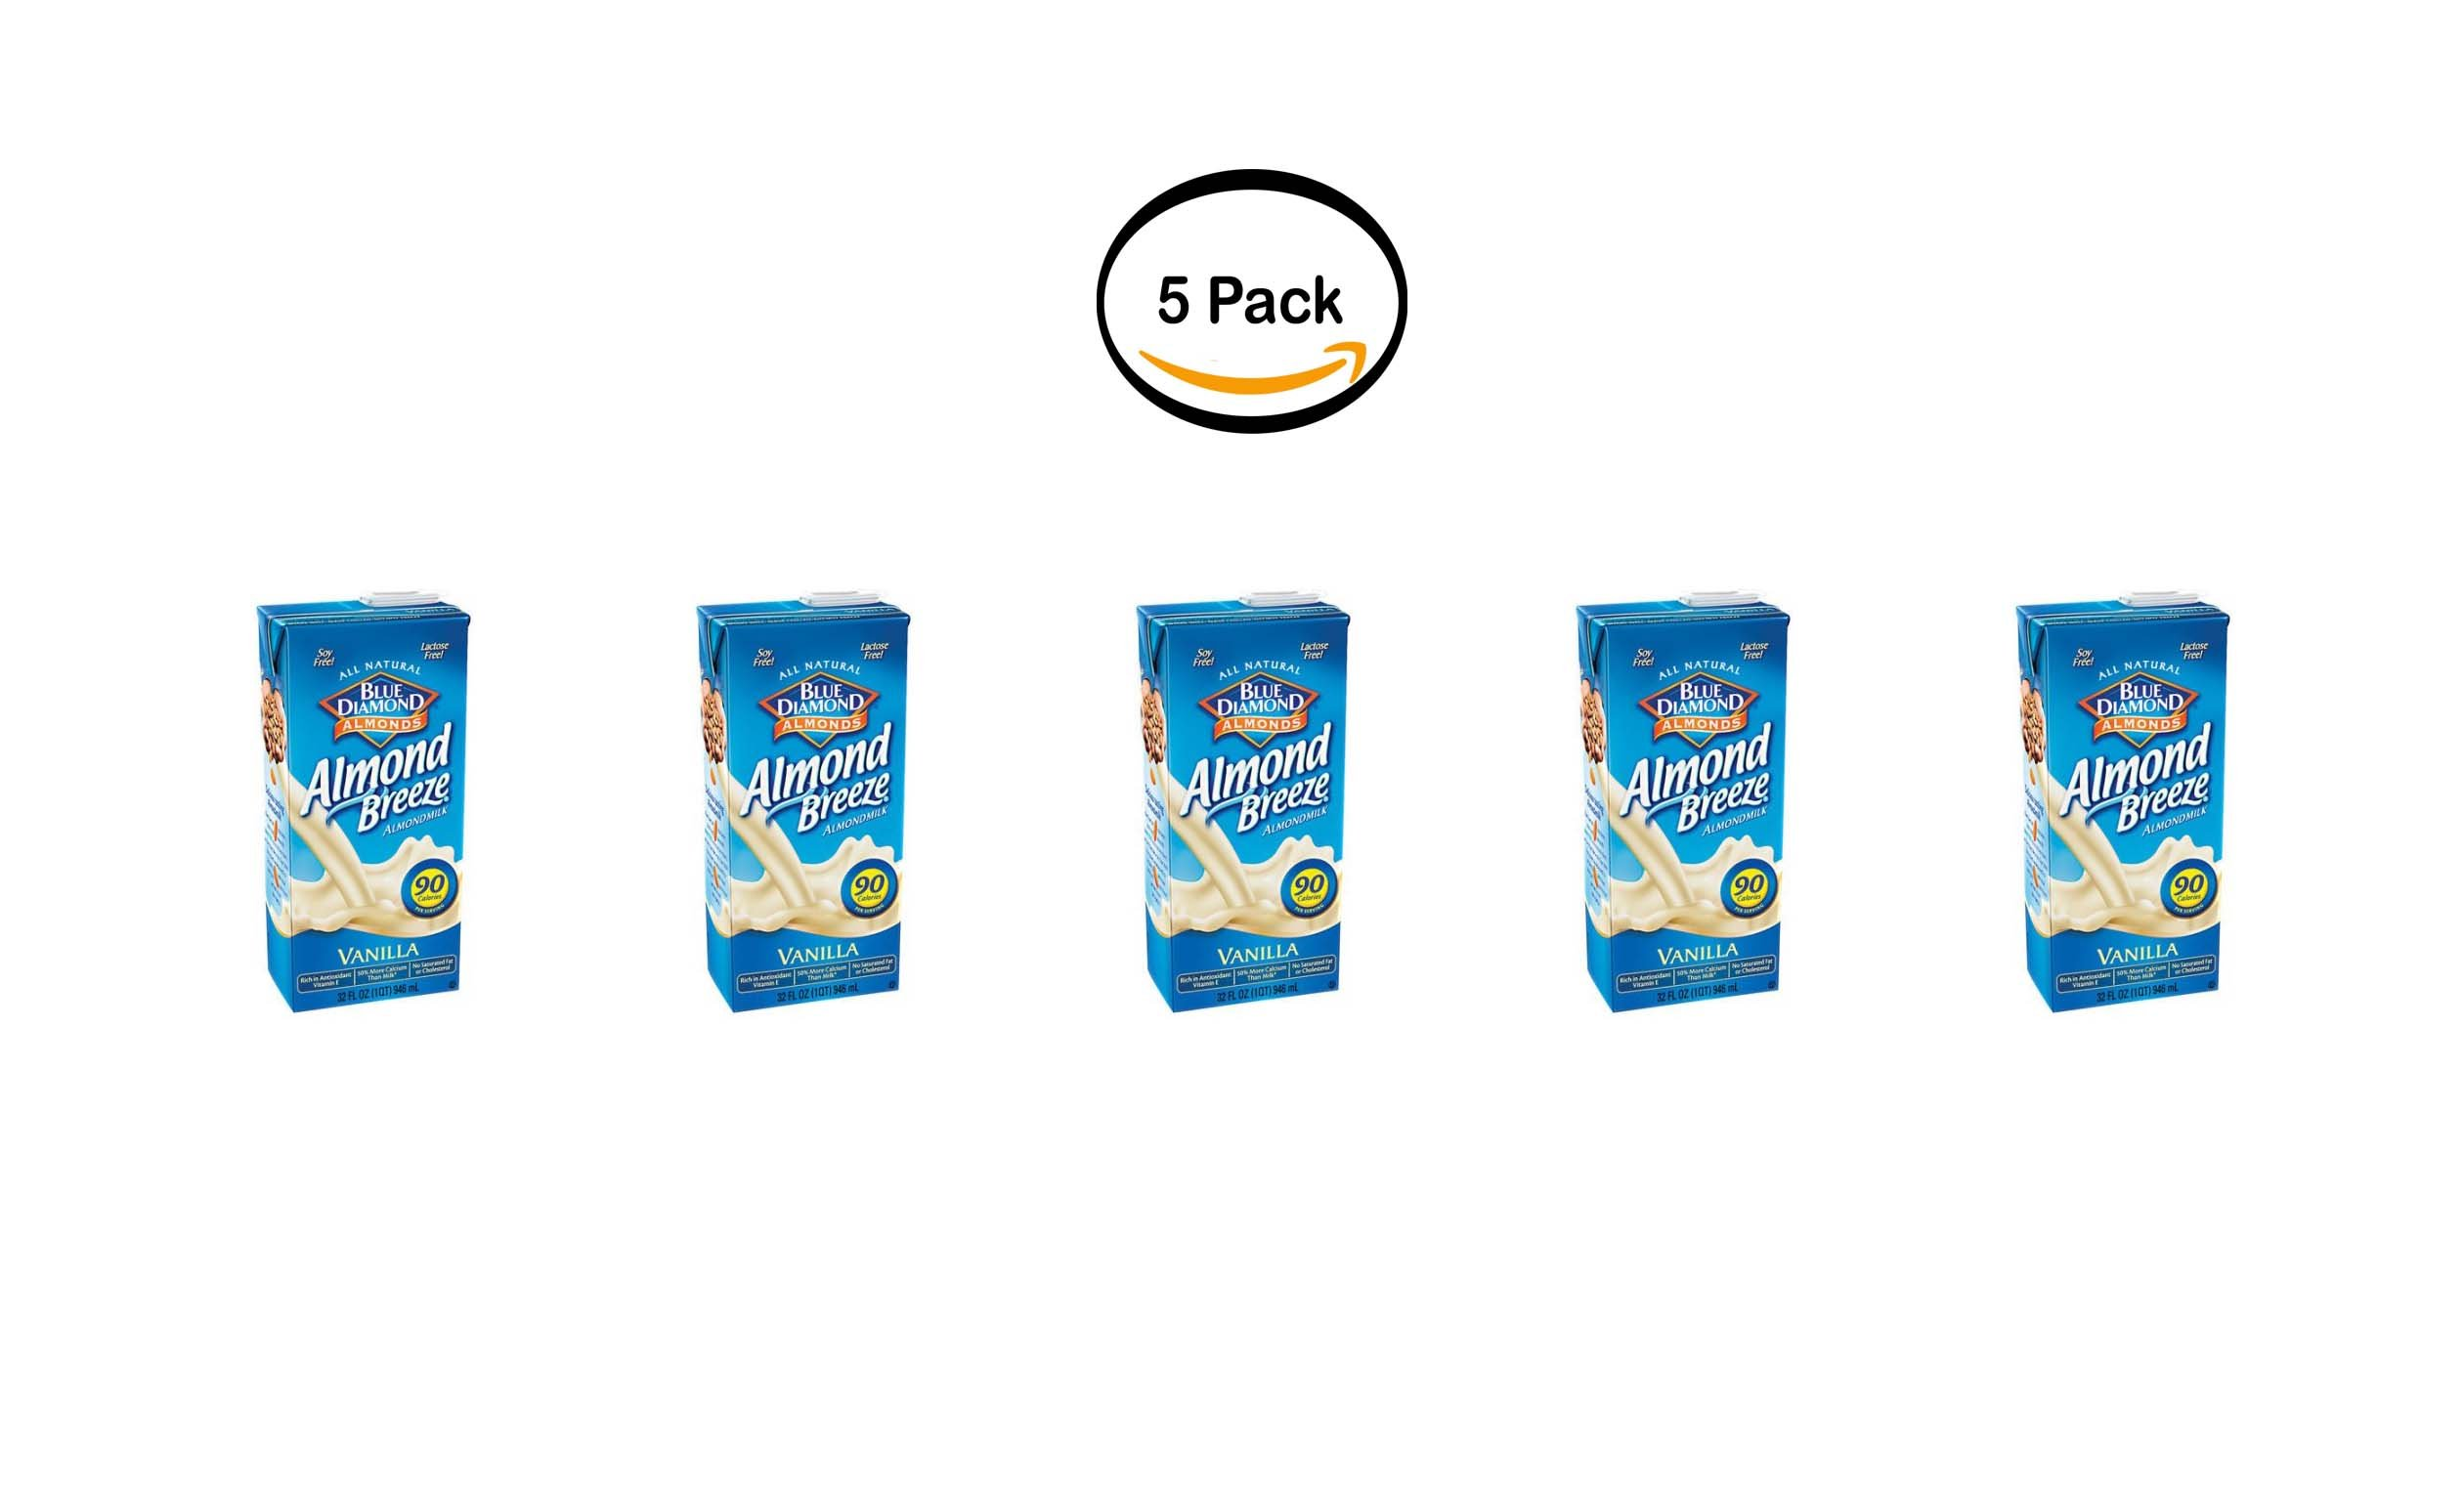 PACK OF 5 - Almond Breeze Vanilla Almond Milk, 32 fl oz (Pack of 4)